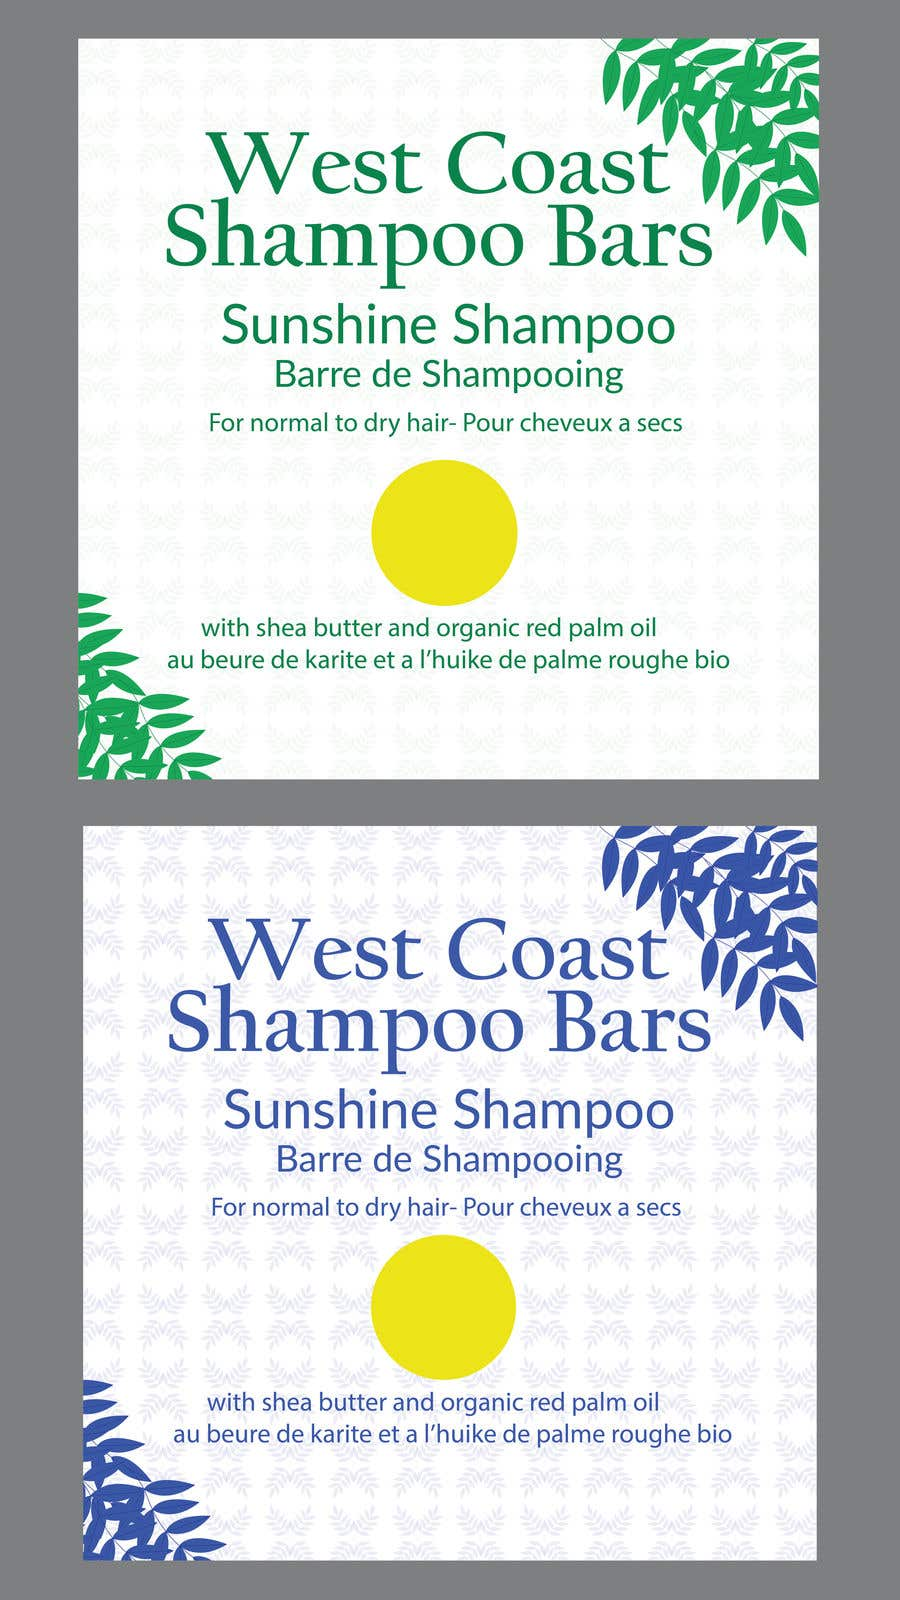 Bài tham dự cuộc thi #                                        3                                      cho                                         I need design help for packaging for shampoo and conditioner bars